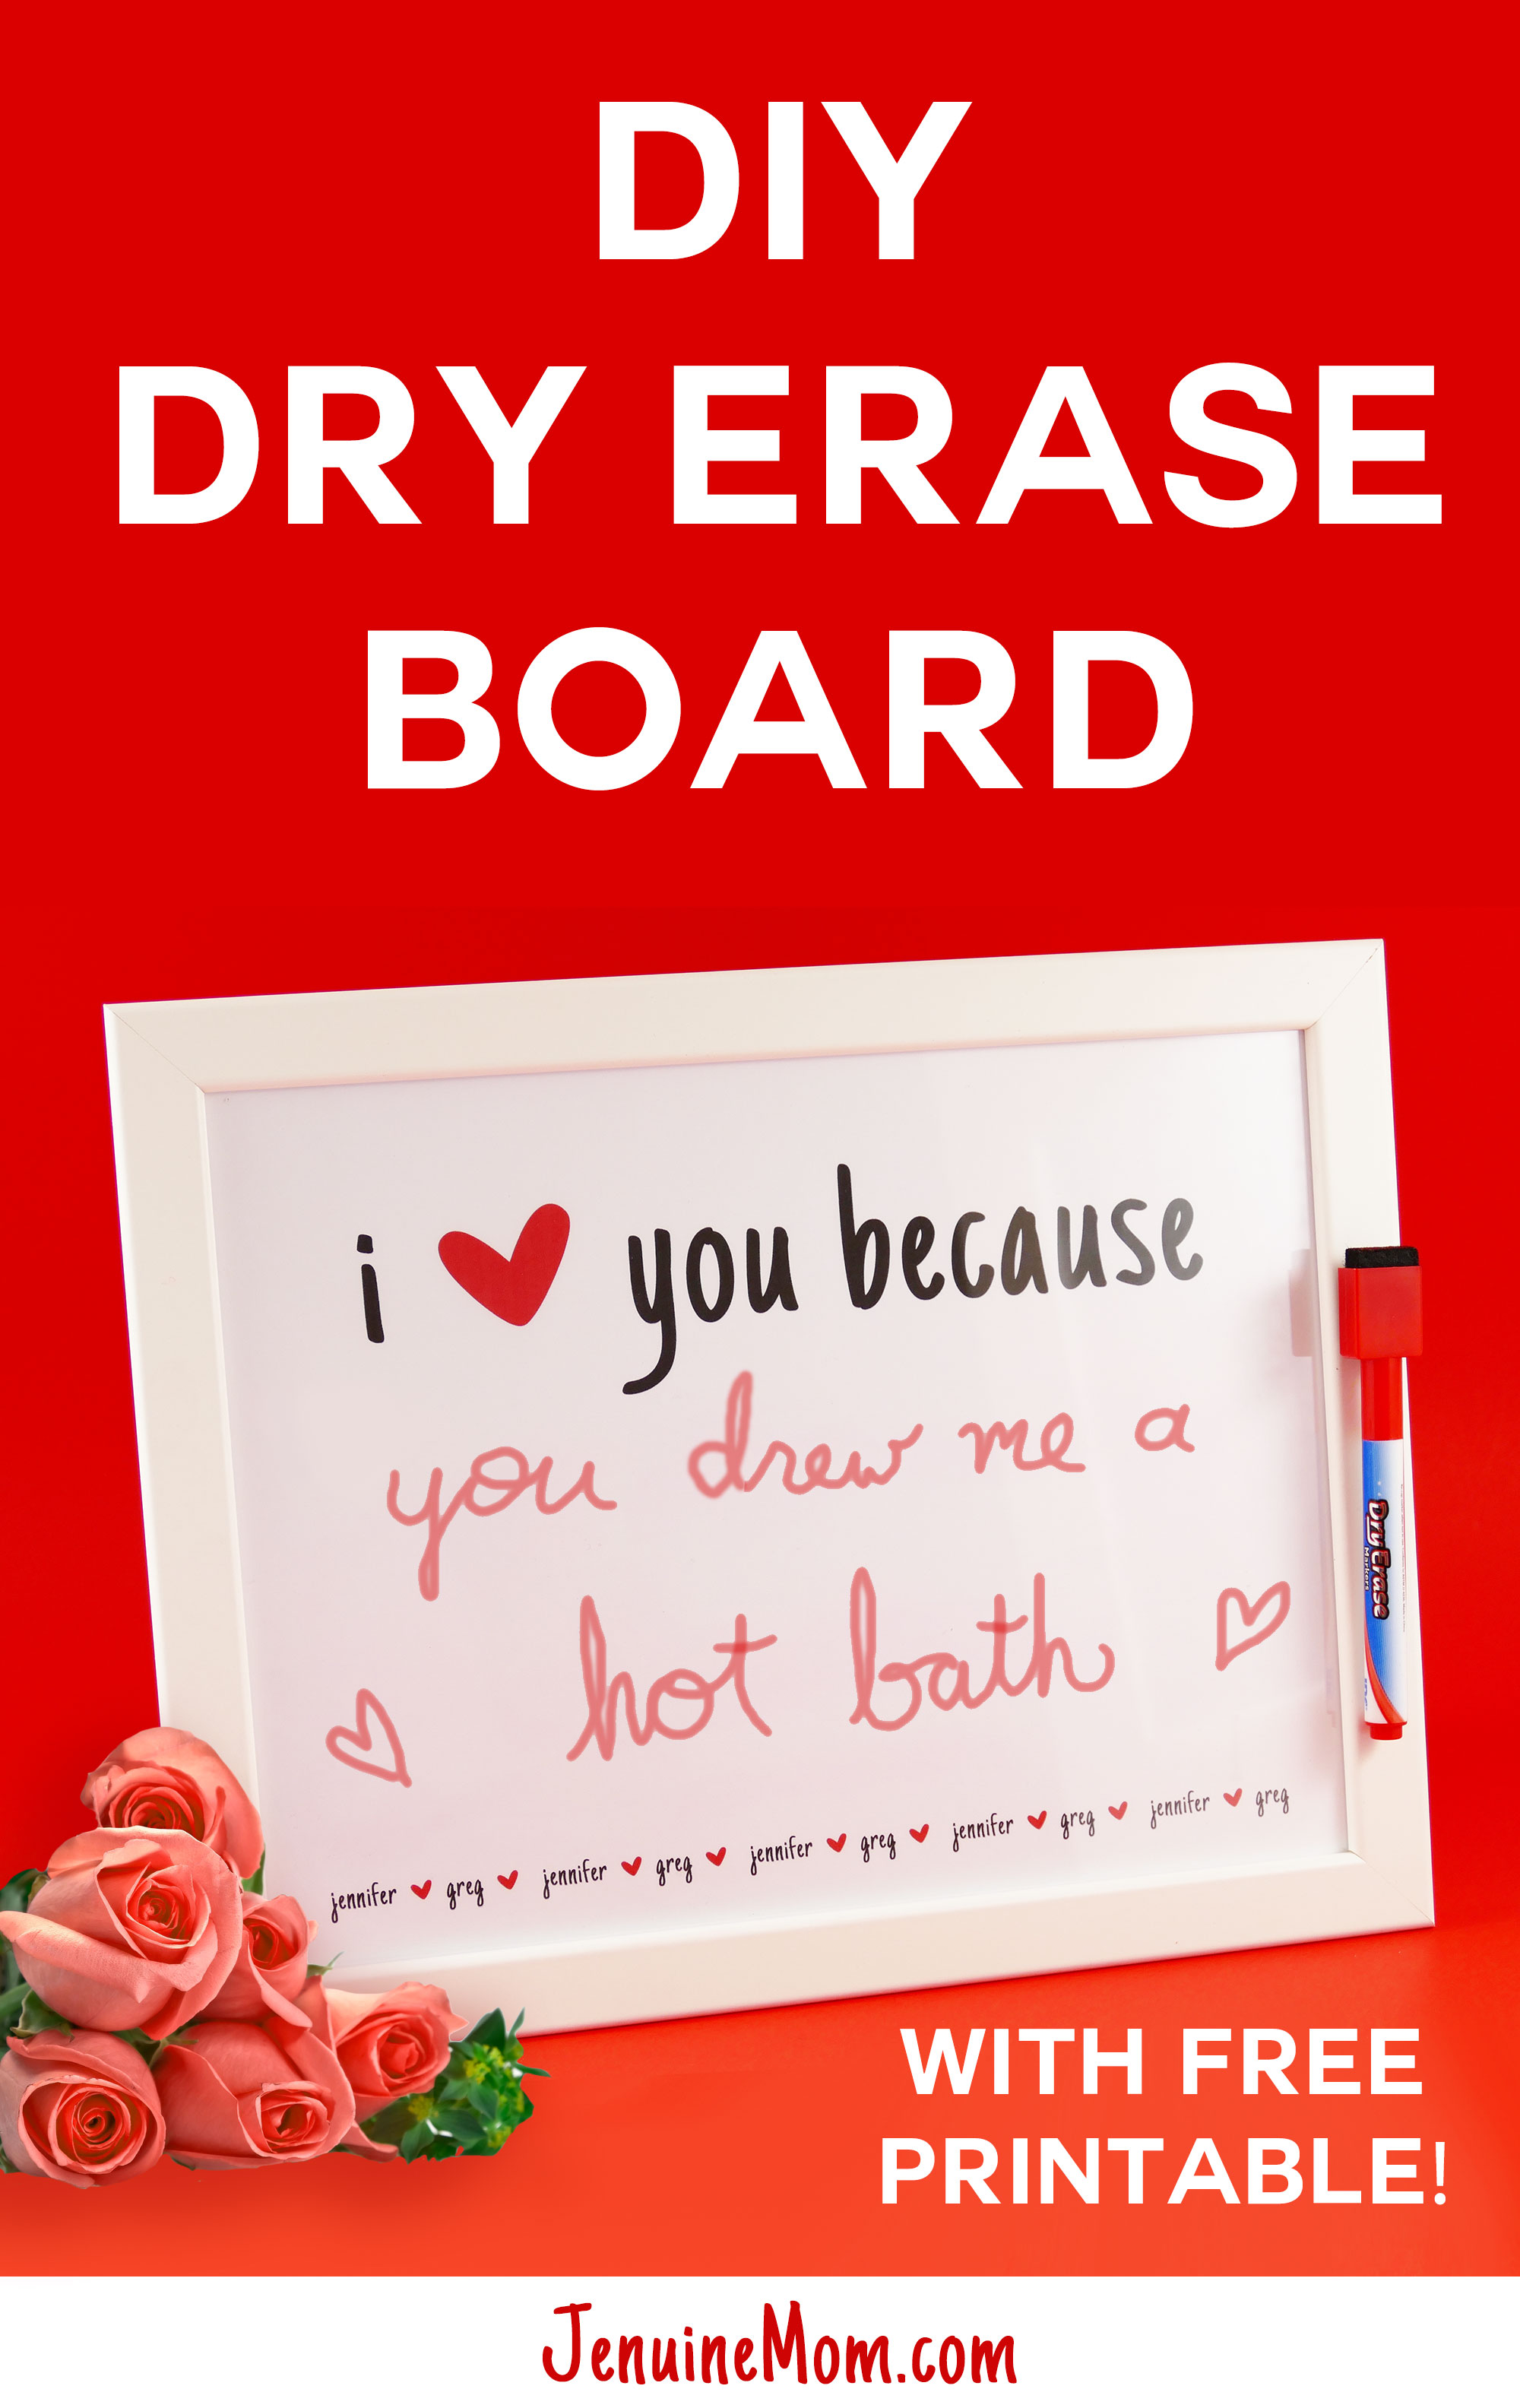 Diy Dry Erase Board So Simple Cute Jennifer Maker Building A Circuit Fun With Kids Pinterest Please Pin It To Your Favorite